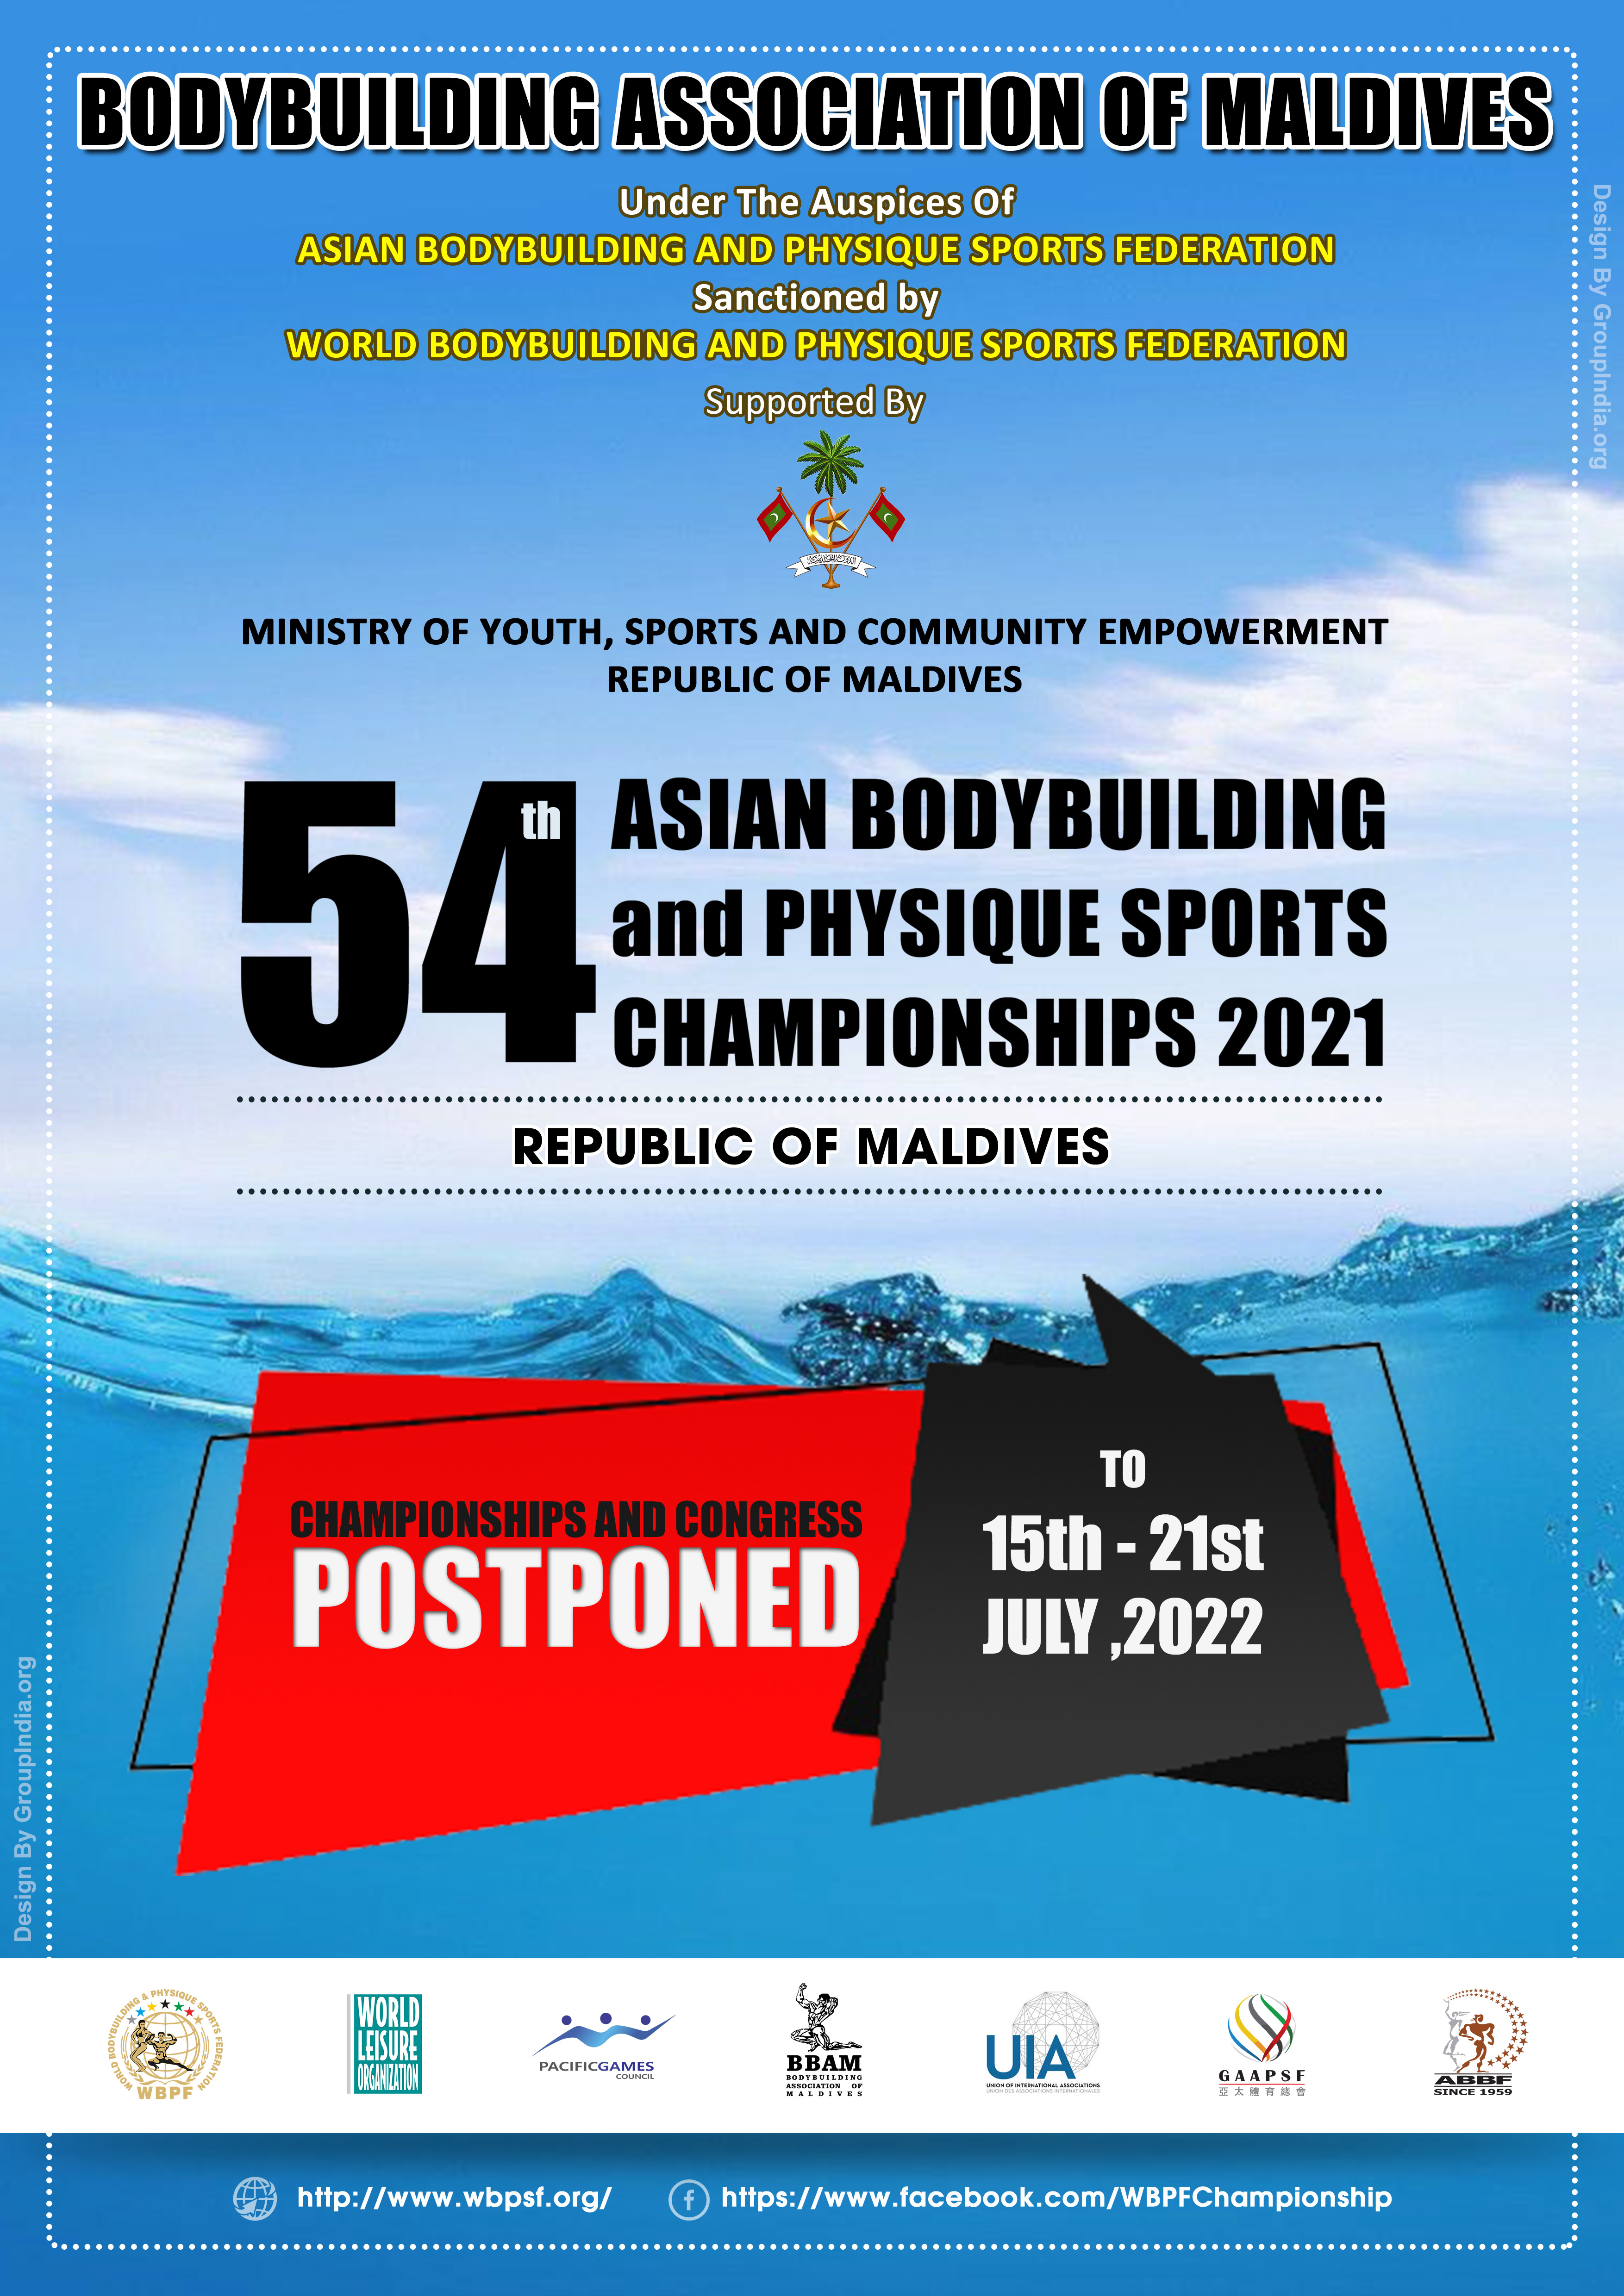 54th-Asian-Bodybuilding-And-Physique-Sports-Championships-2021